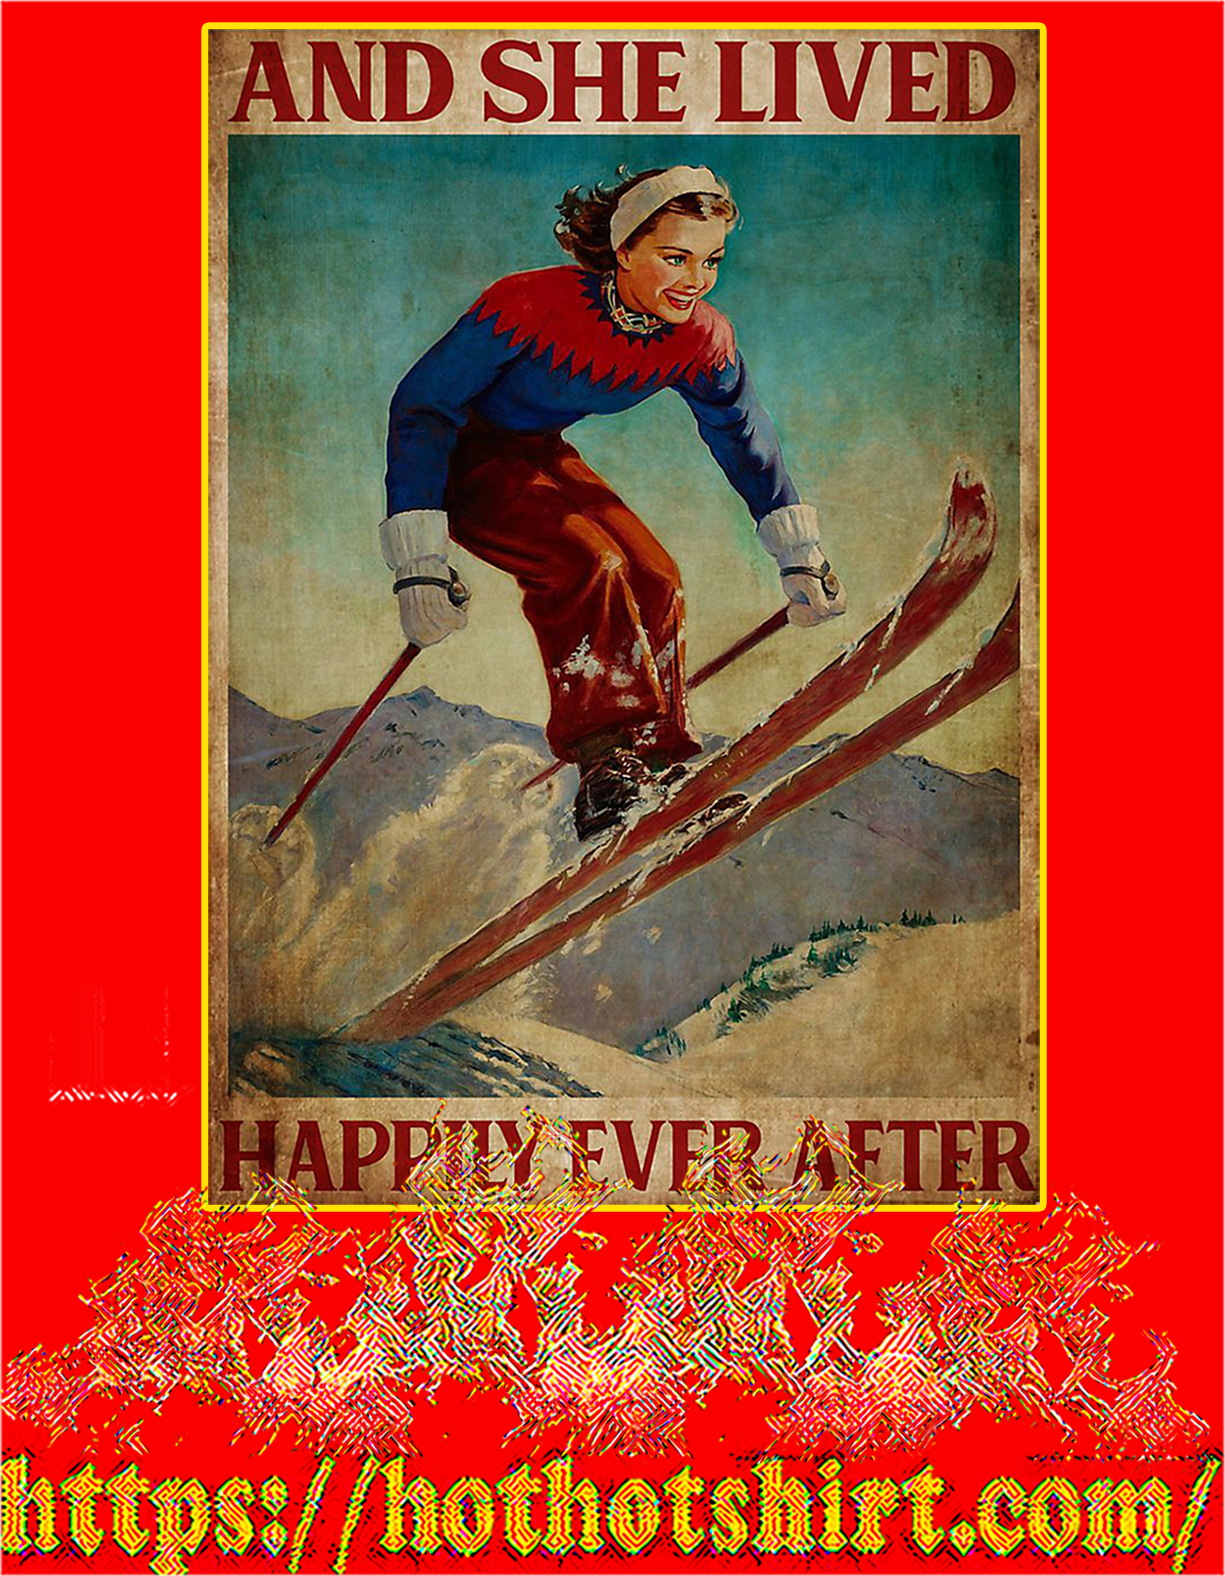 Skiing and she lived happily ever after poster - A4